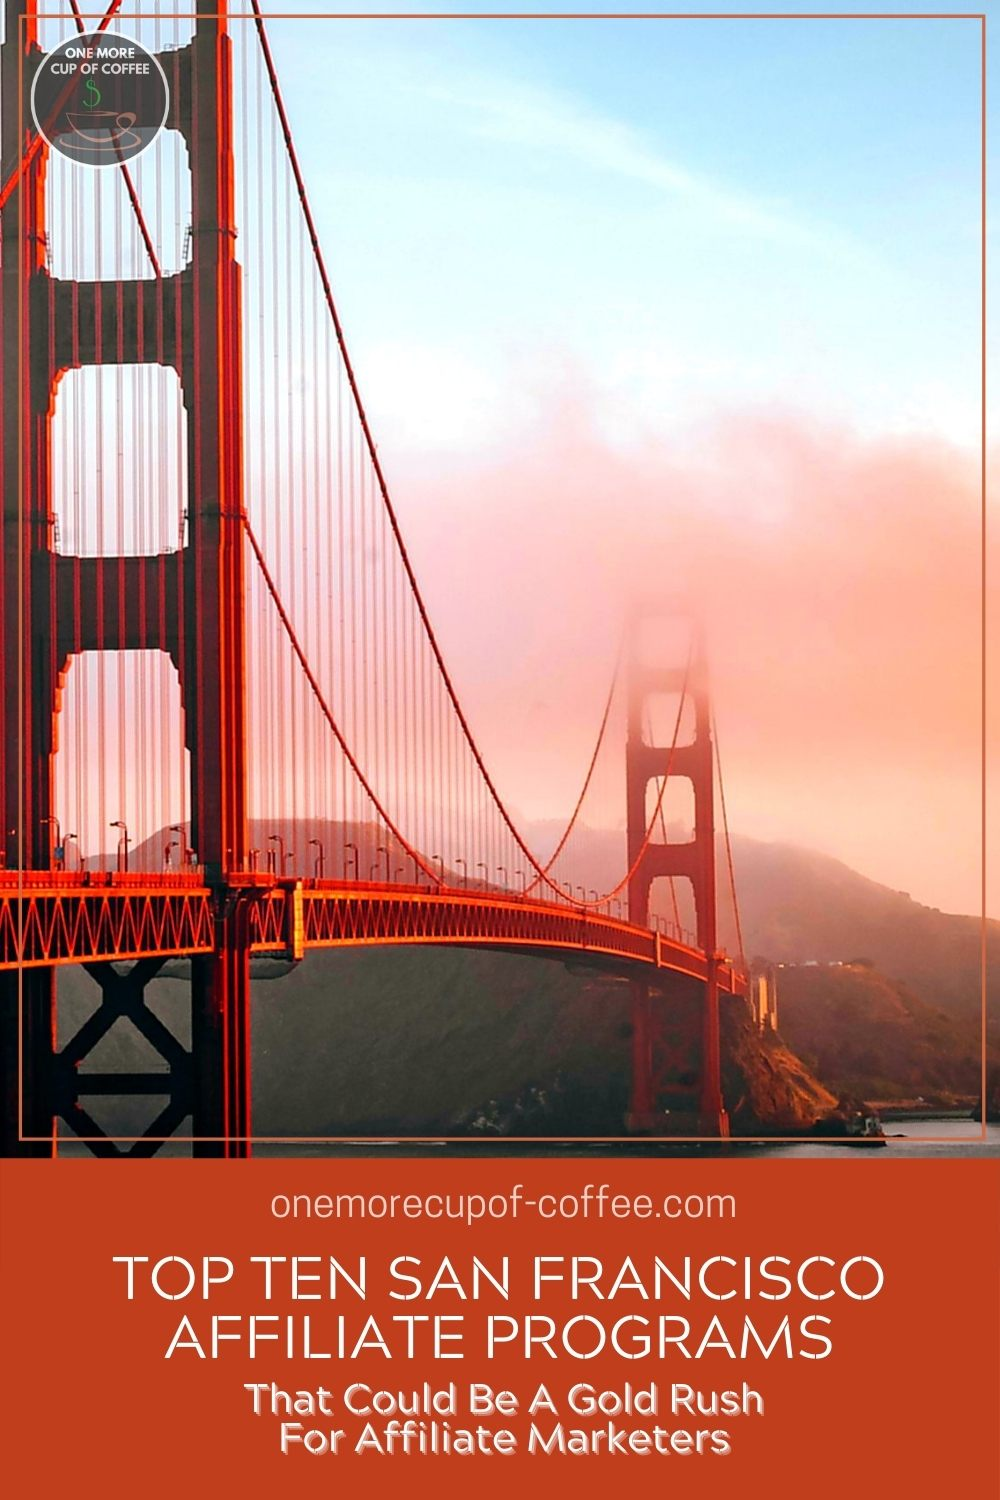 """Image of the Golden Gate Bridge with text overlay """"Top Ten San Francisco Affiliate Programs That Could Be A Gold Rush For Affiliate Marketers"""""""